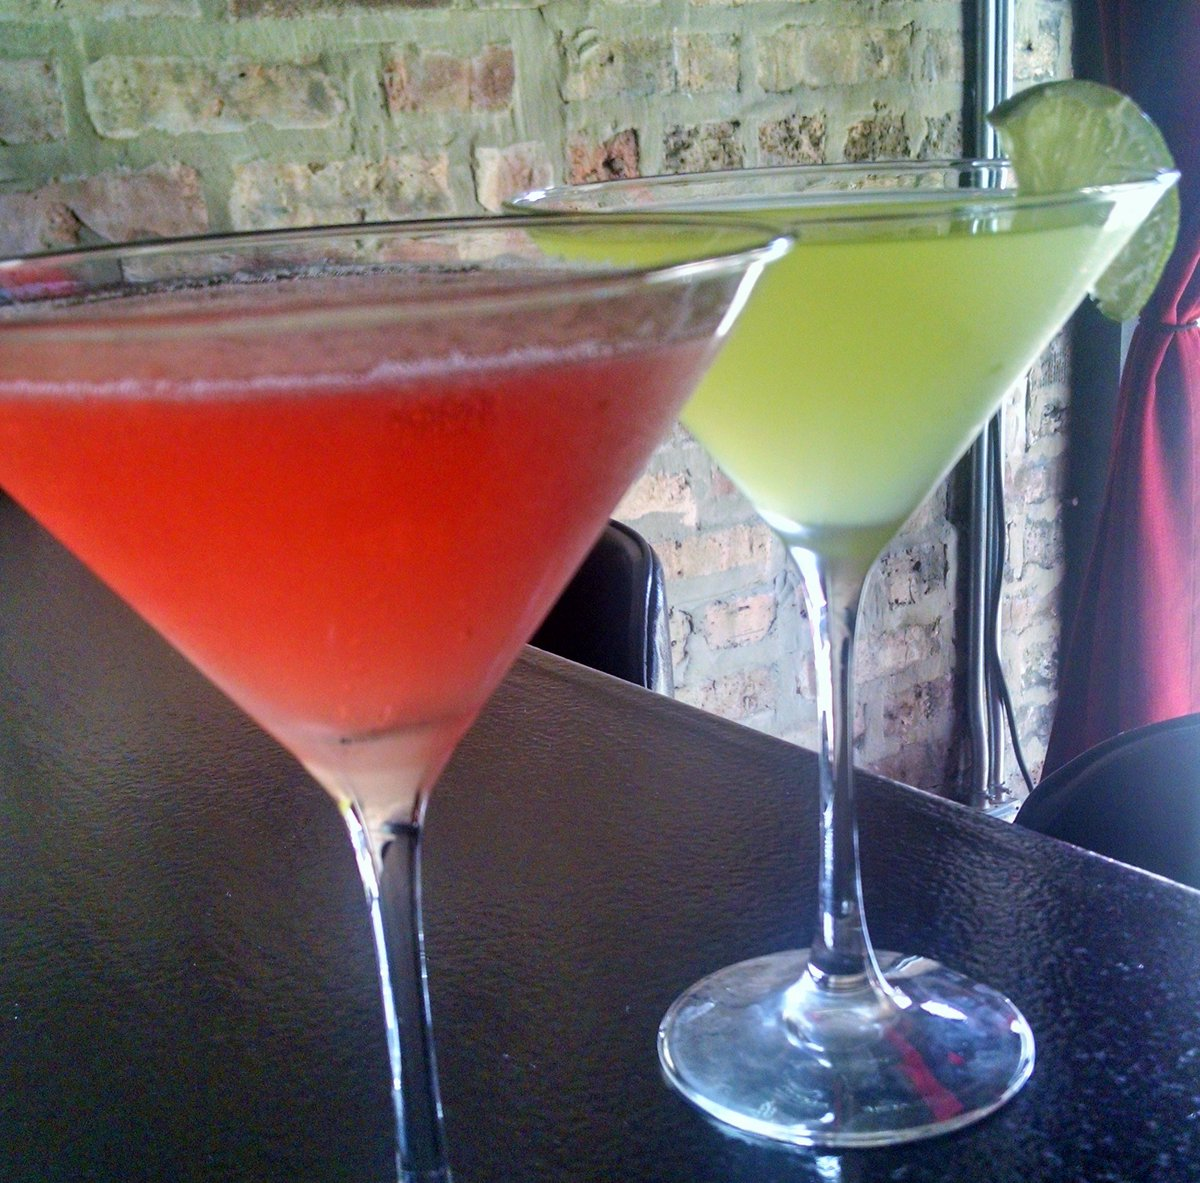 $5 #Martinis on Friday! #drinkspecial https://t.co/pEZQlEdM0T